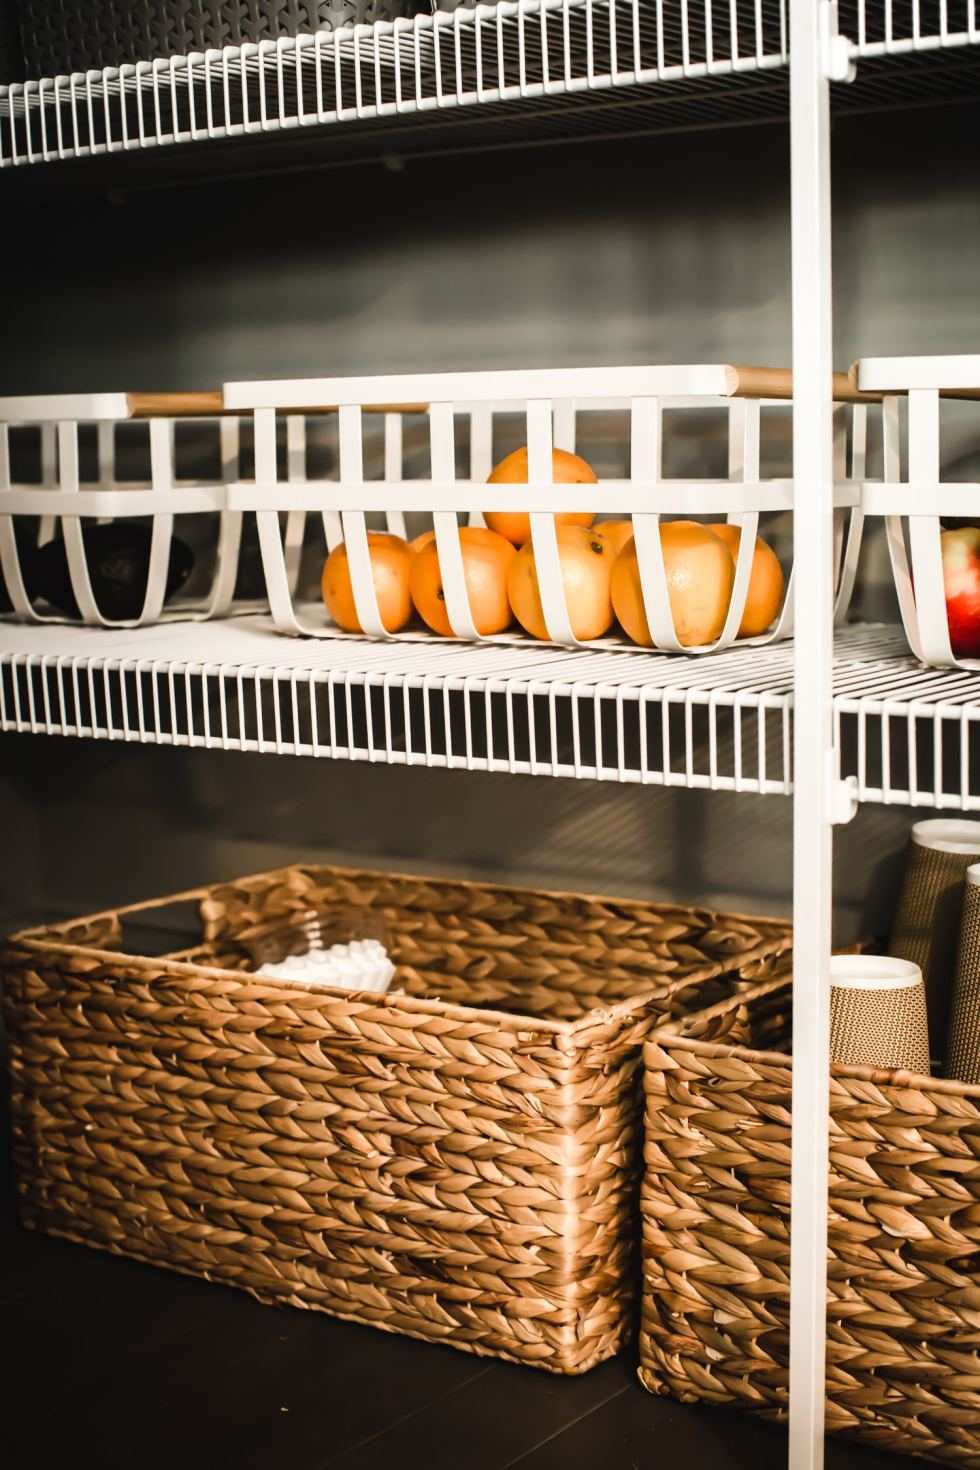 pantry shelving with basket of oranges